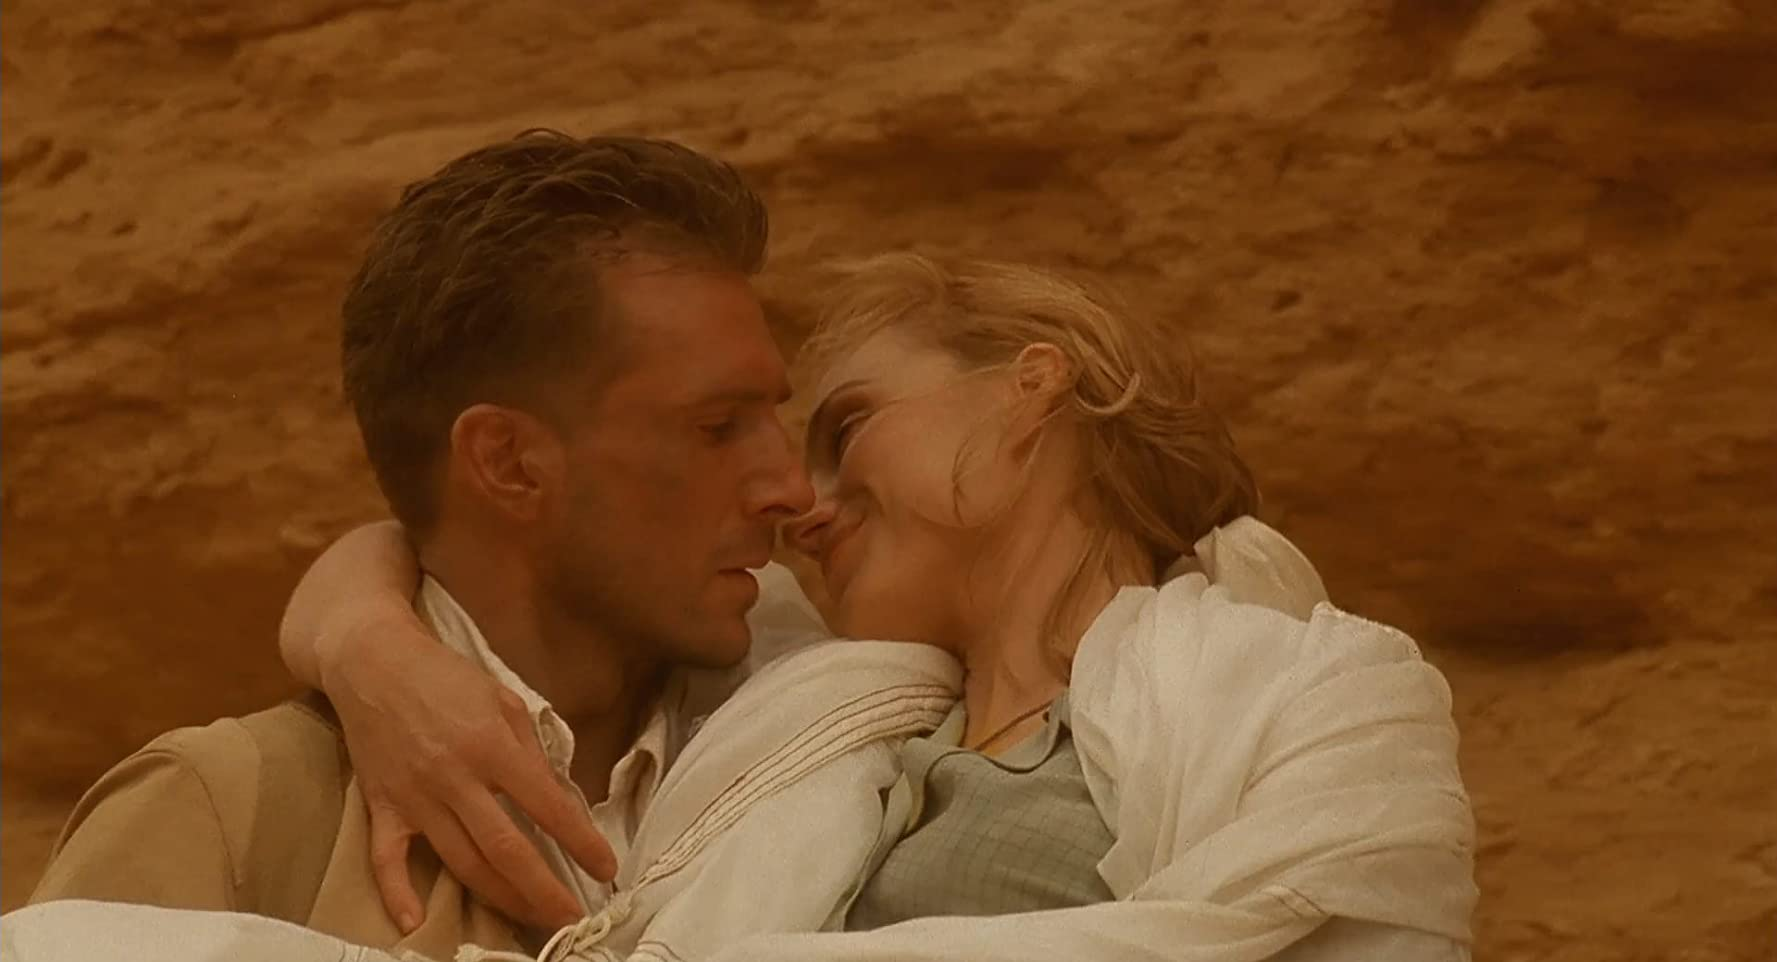 Historias de amor - Ralph Fiennes and Kristin Scott Thomas in The English Patient (1996)